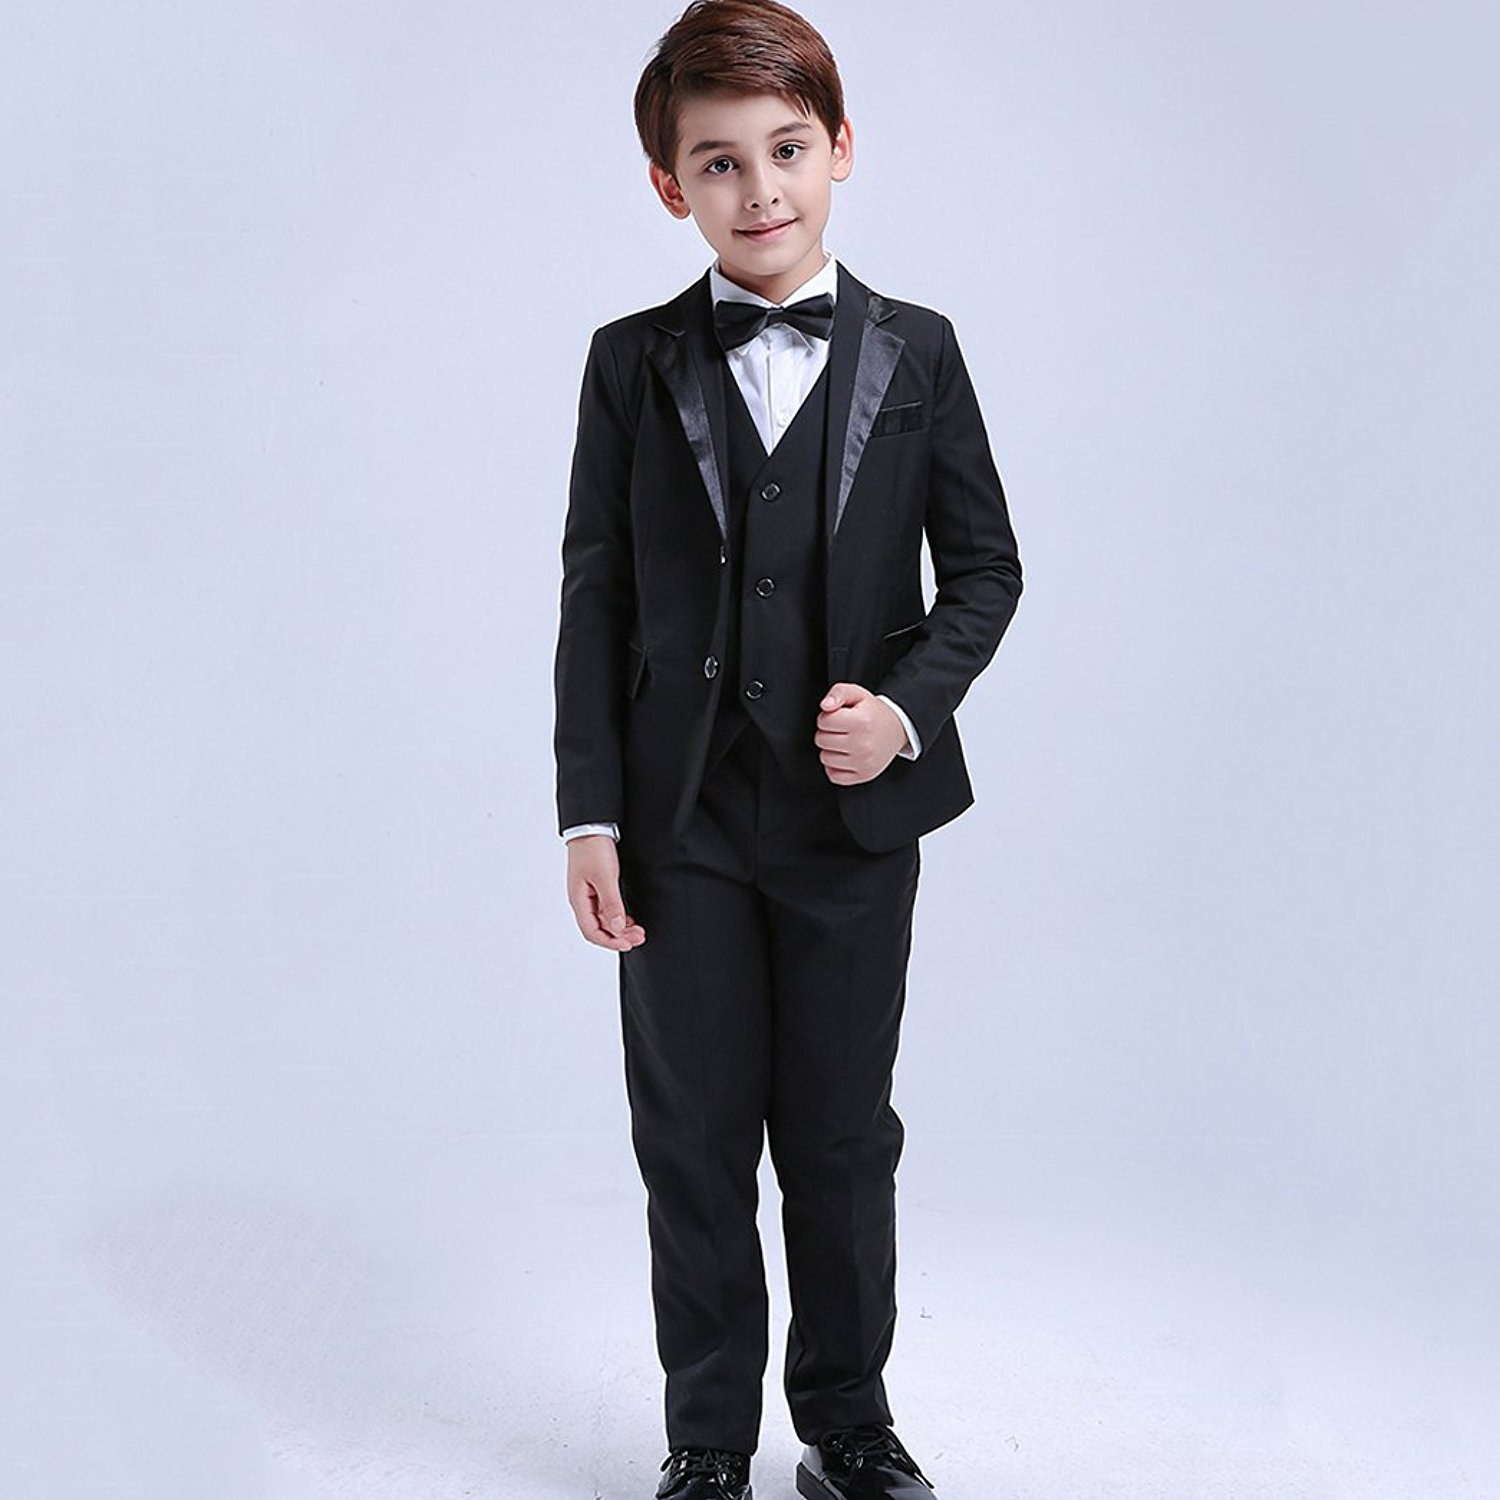 7 Pcs Toddler /& Boy Suits Formal Tuxedo Shirt Vest Wedding Party Suit Black